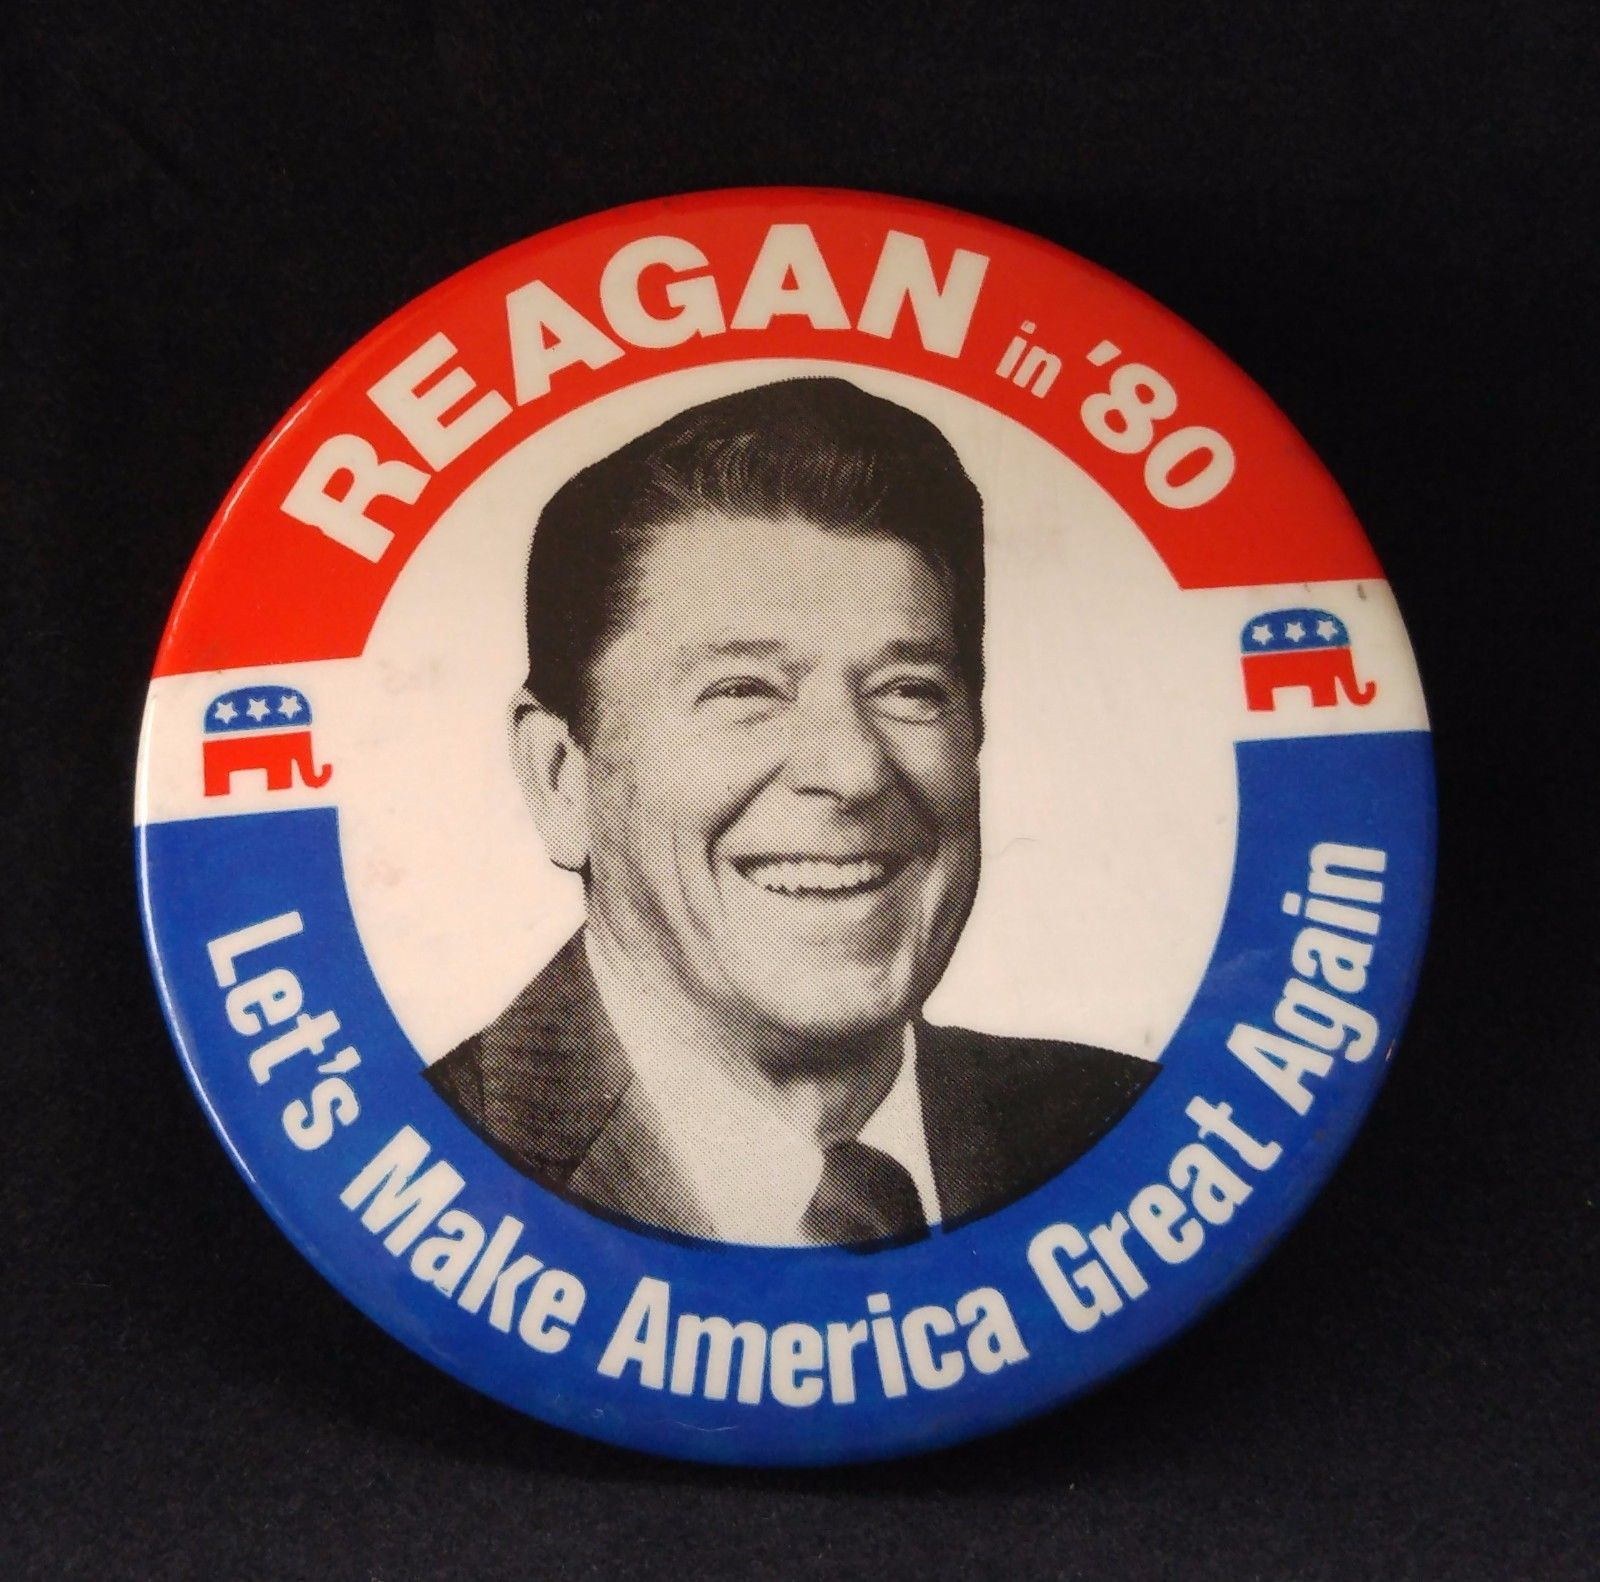 rare-facing-right-reagan-in-80-let-s-make-america-great-again-3-5-button-ddce082219fe0c5577dcc1990bc22898.jpg